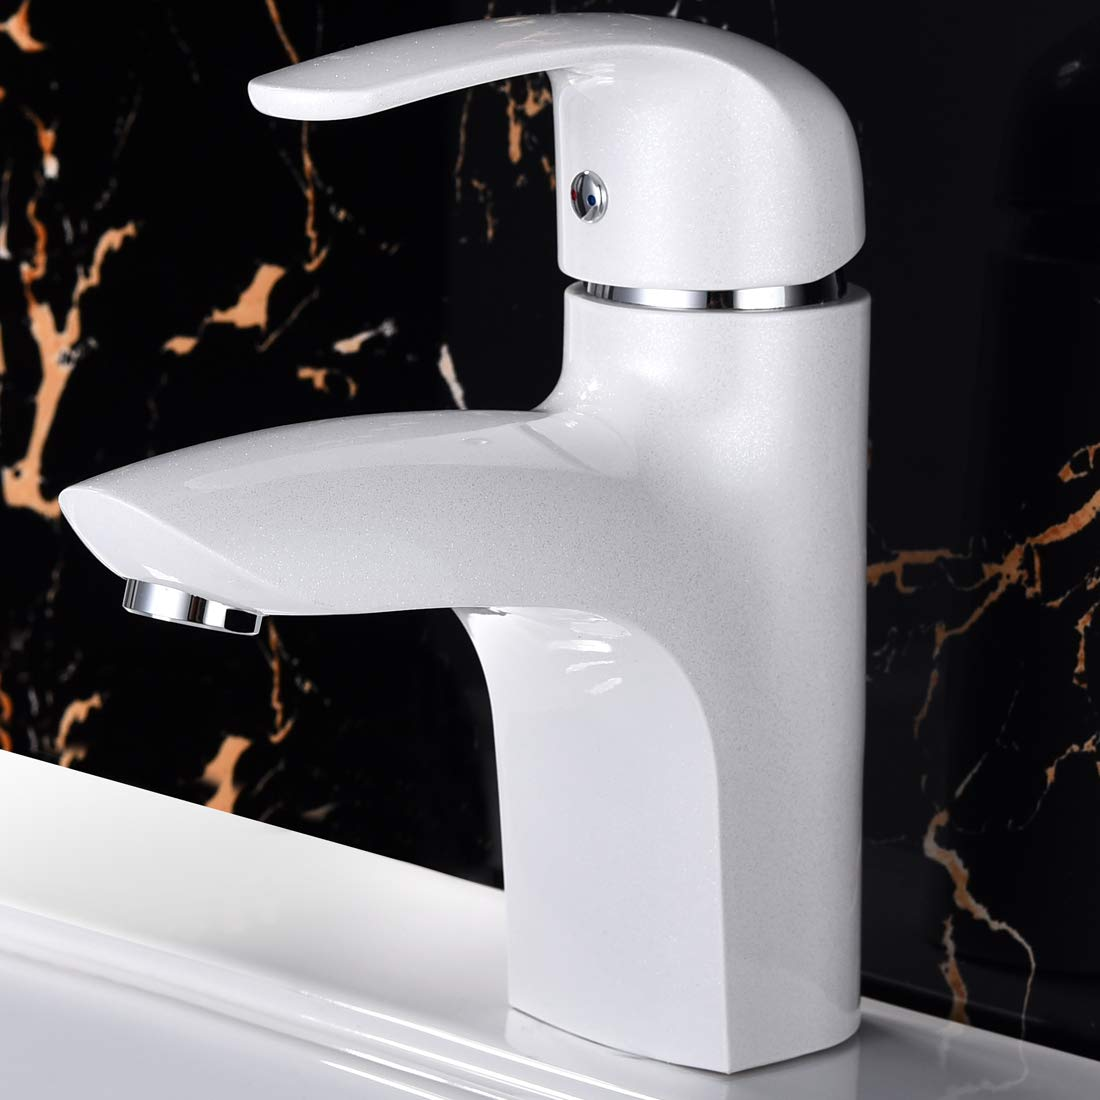 Bathroom Faucet Bar Sink Faucets Mixer Tap with Hot and Cold Water Supply Hose, Single Handle Single Hole (Elegant white) (Standard)